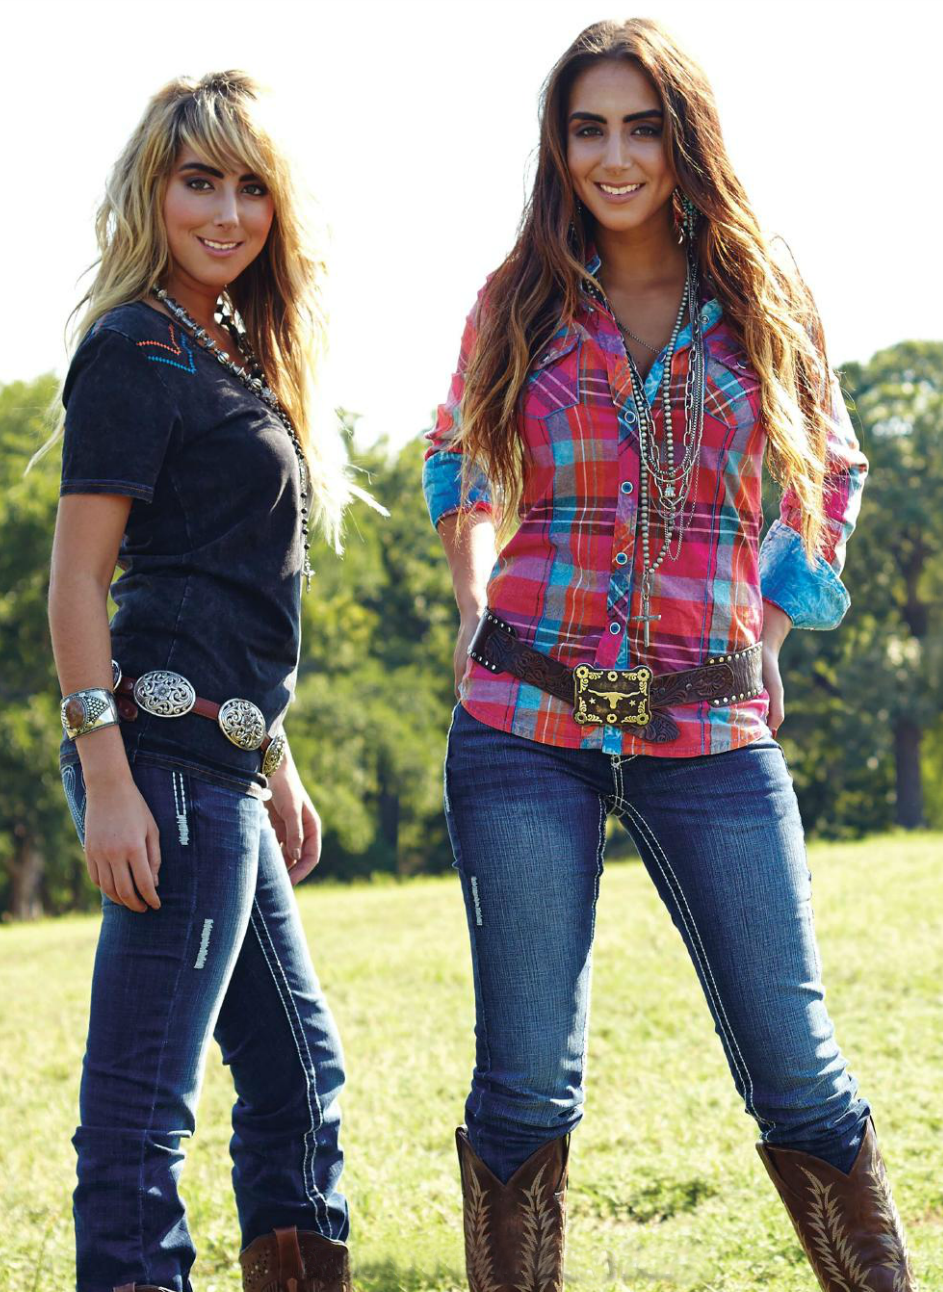 cowgirlup_field_shot_cropped.png